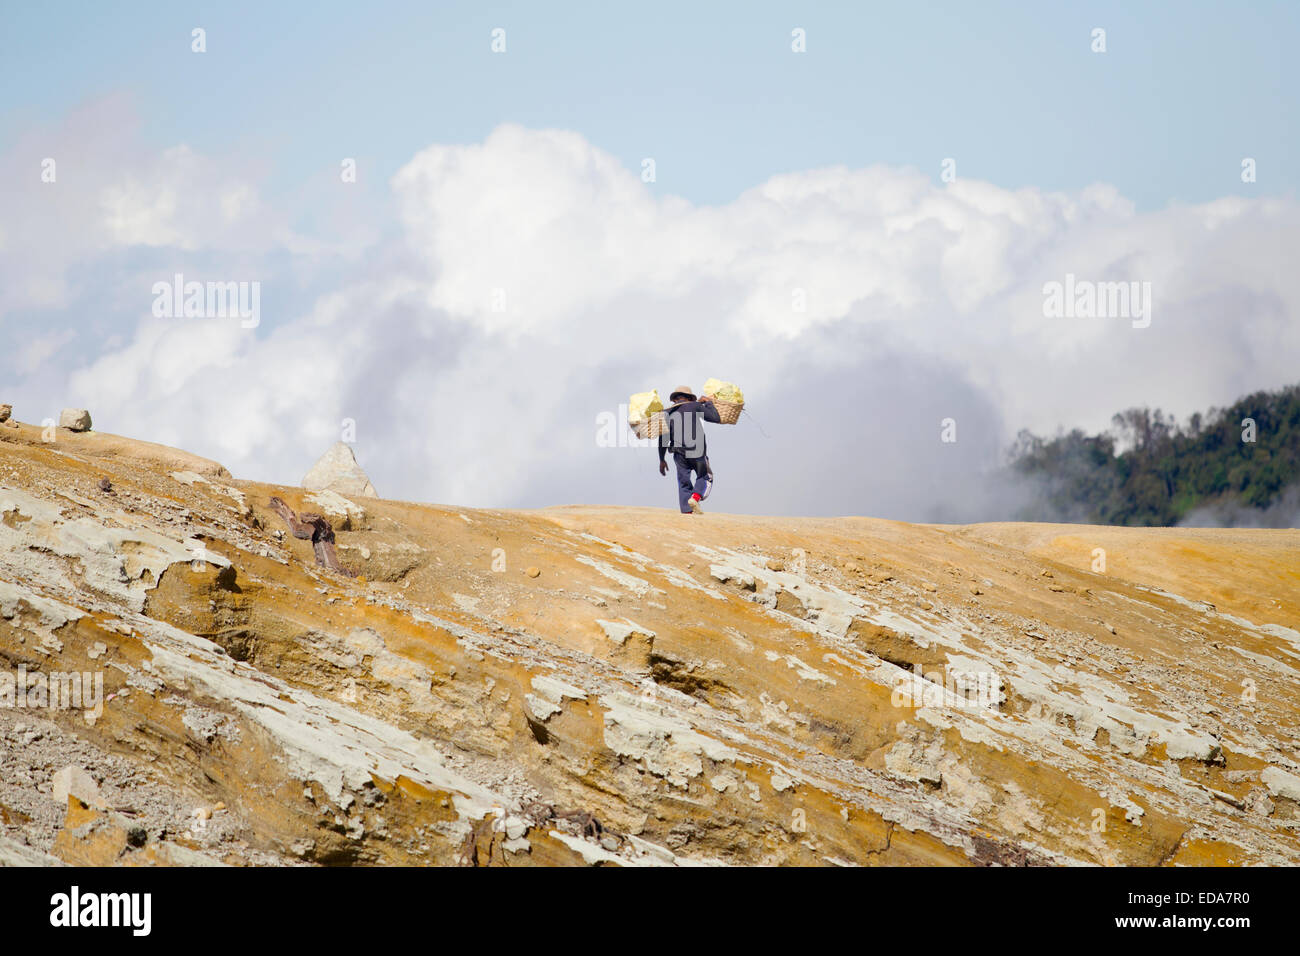 Sulfur porter carrying the heavy baskets down the volcano - Stock Image